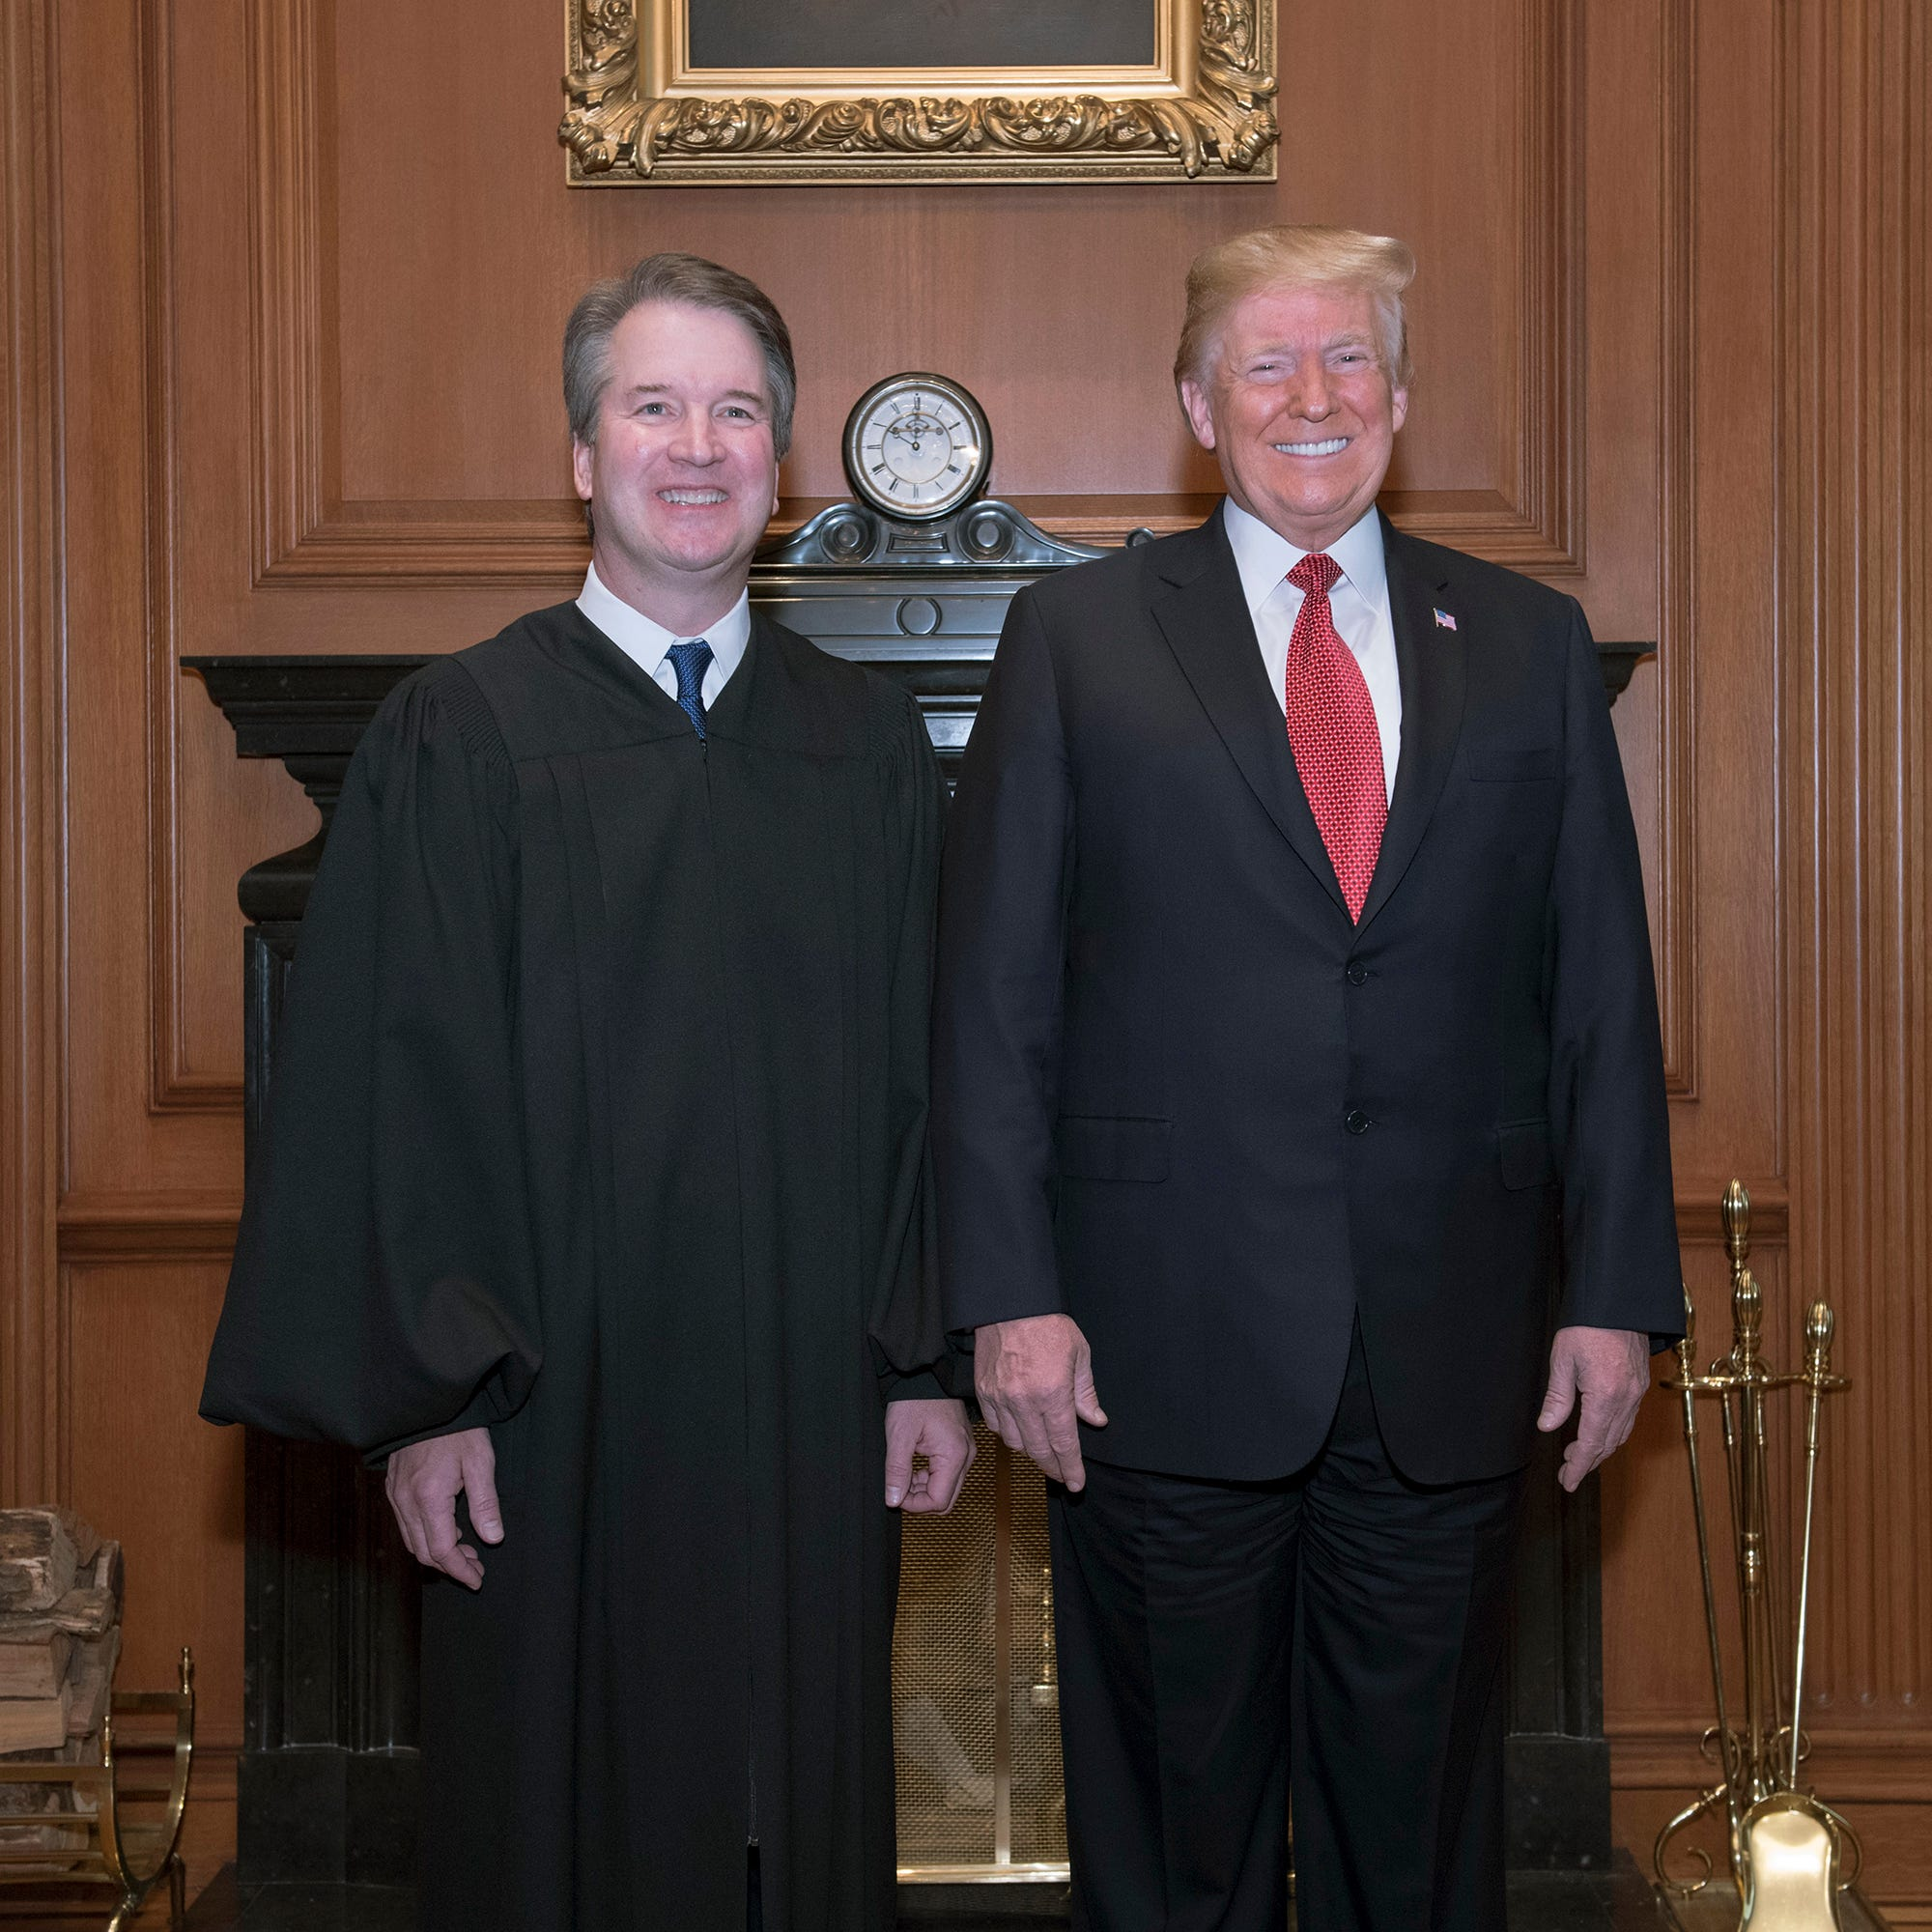 Will Abe Fortas precedent hurt Kavanaugh? | Opinion